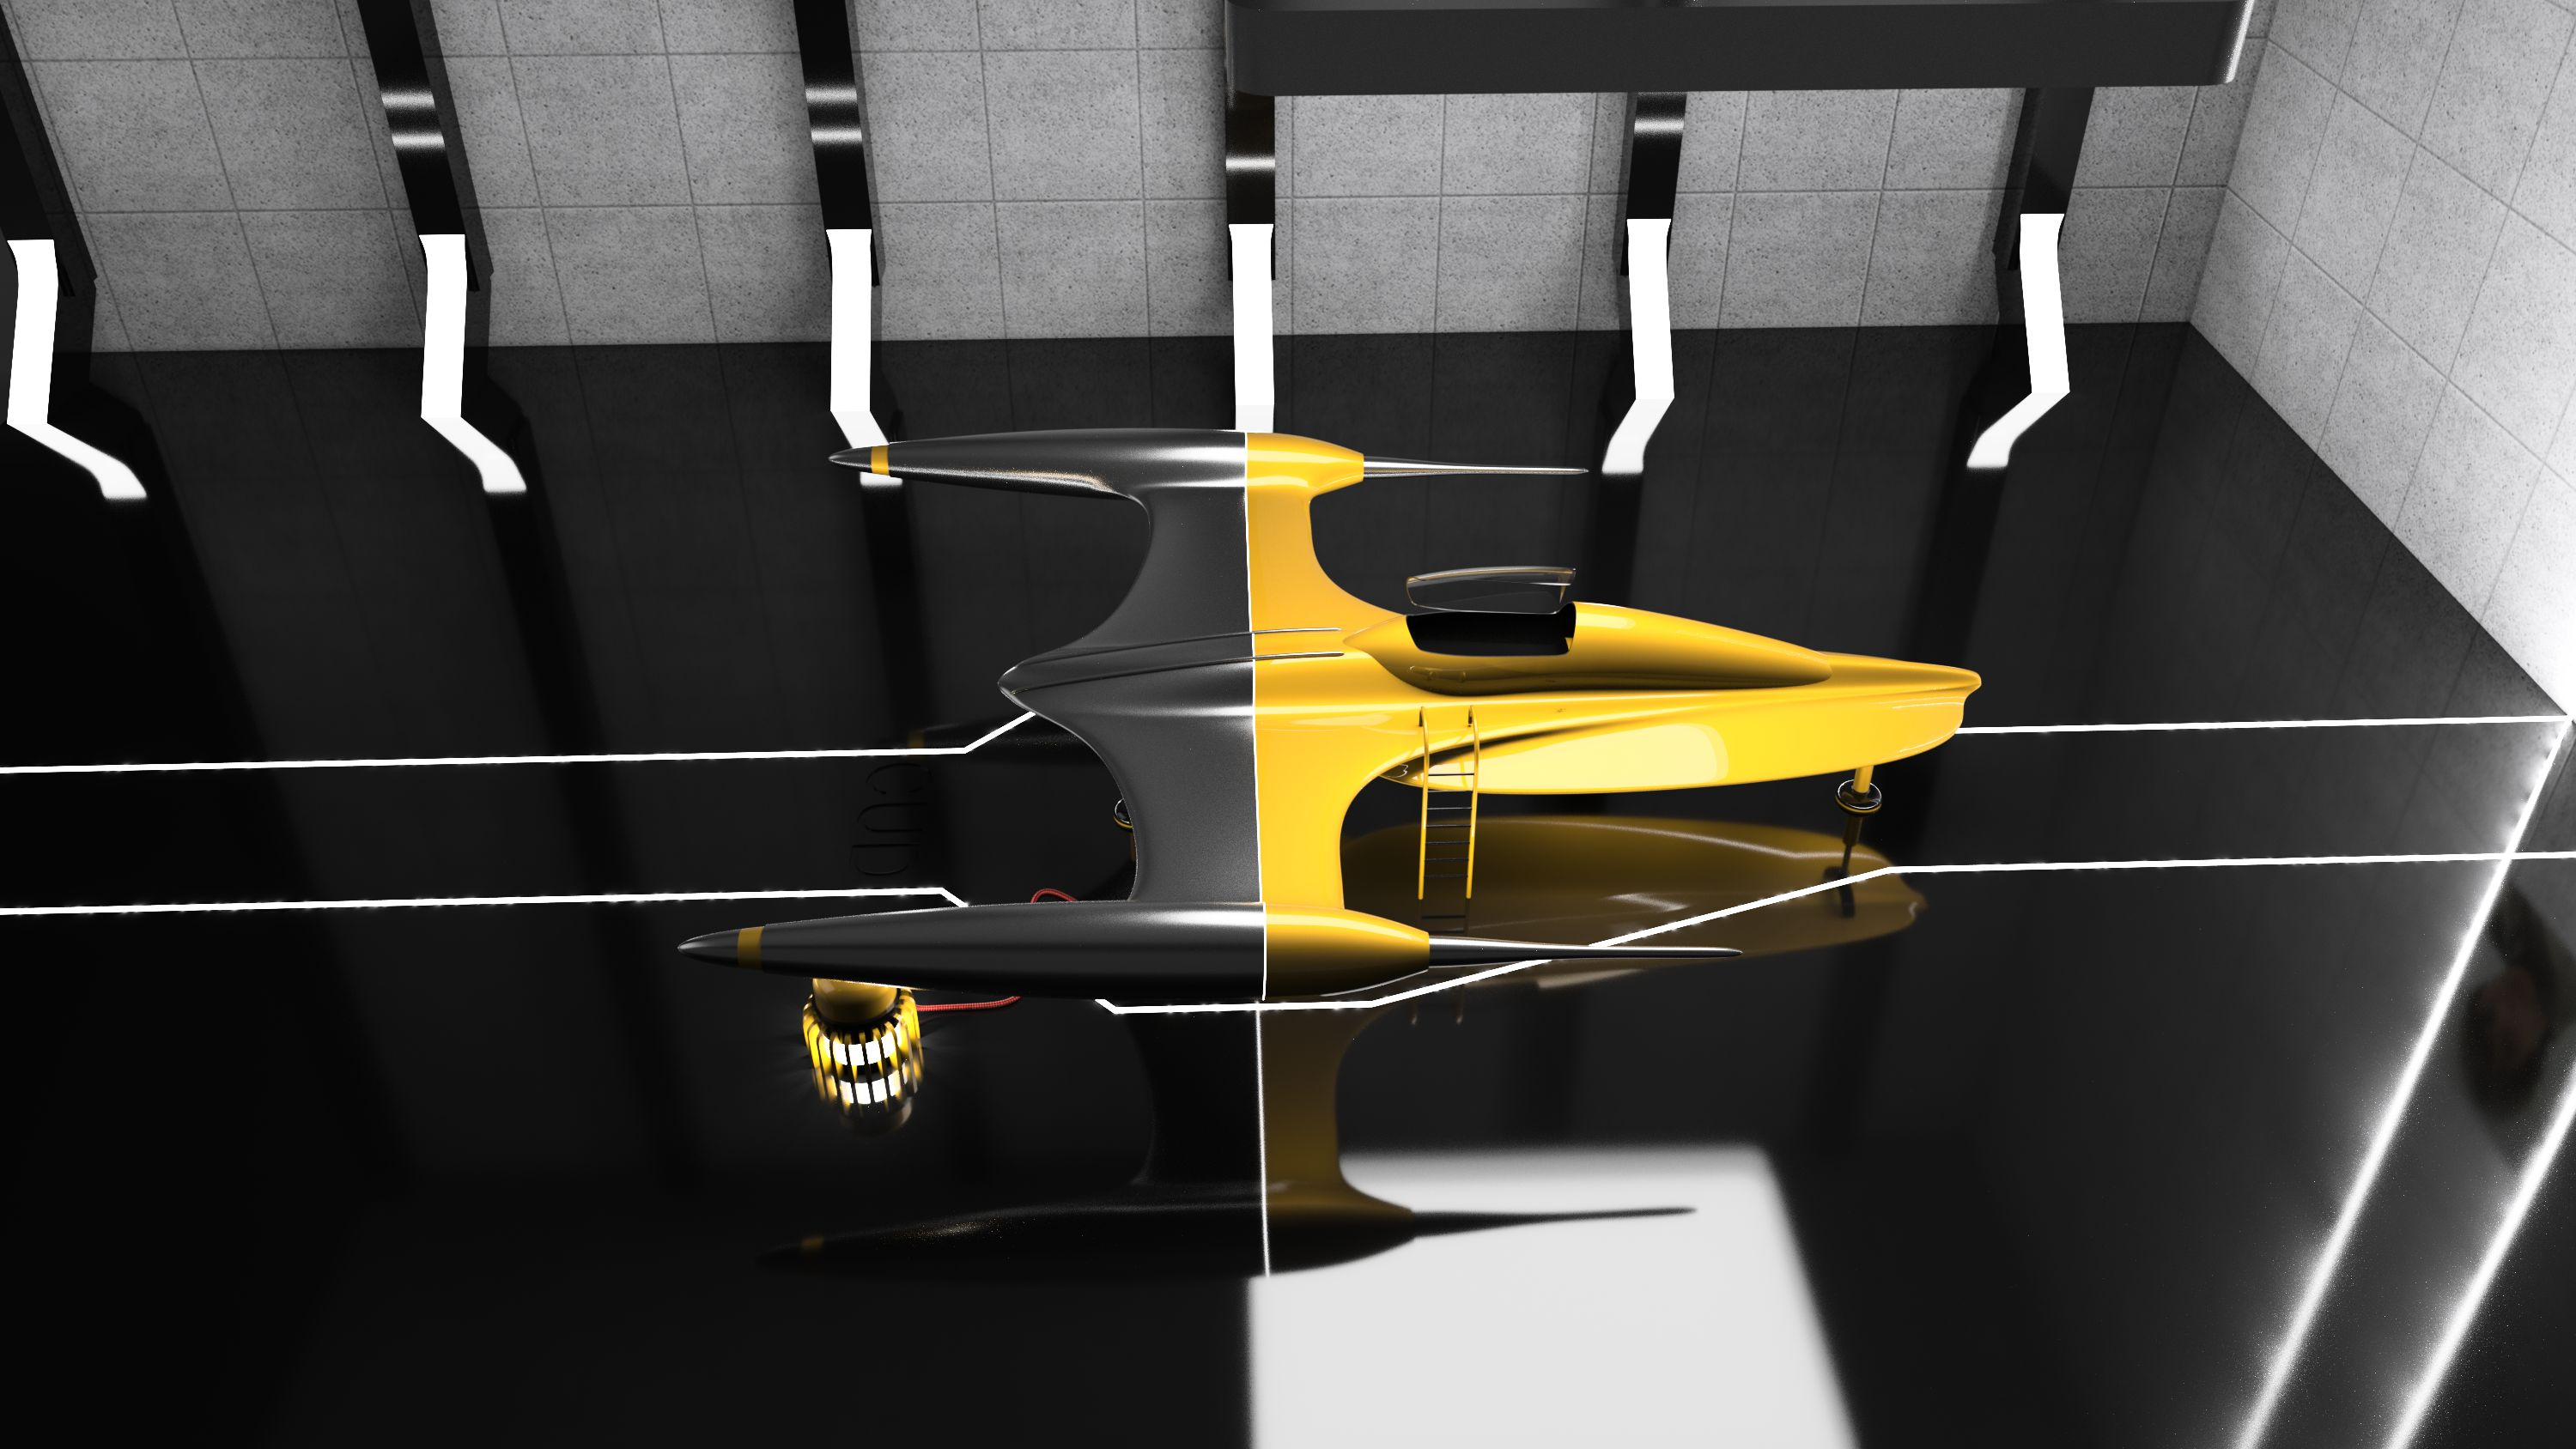 Starfighter-3-2015-dec-11-01-33-46pm-000-customizedview9908703-3500-3500